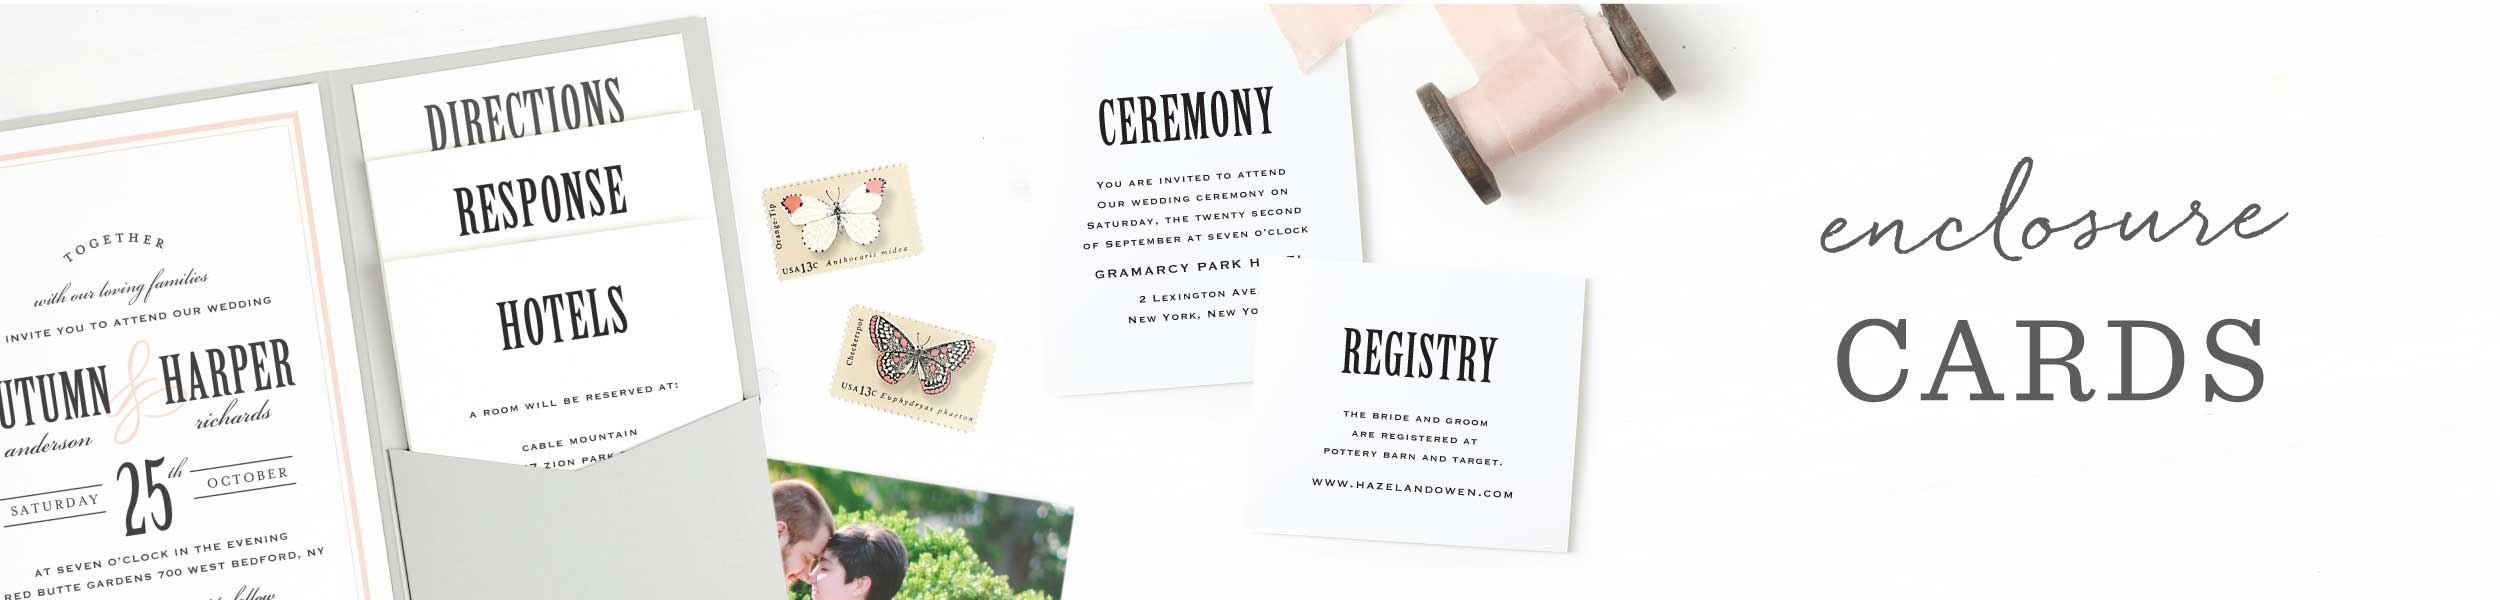 Customizable Wedding Registry Cards - By Basic Invite